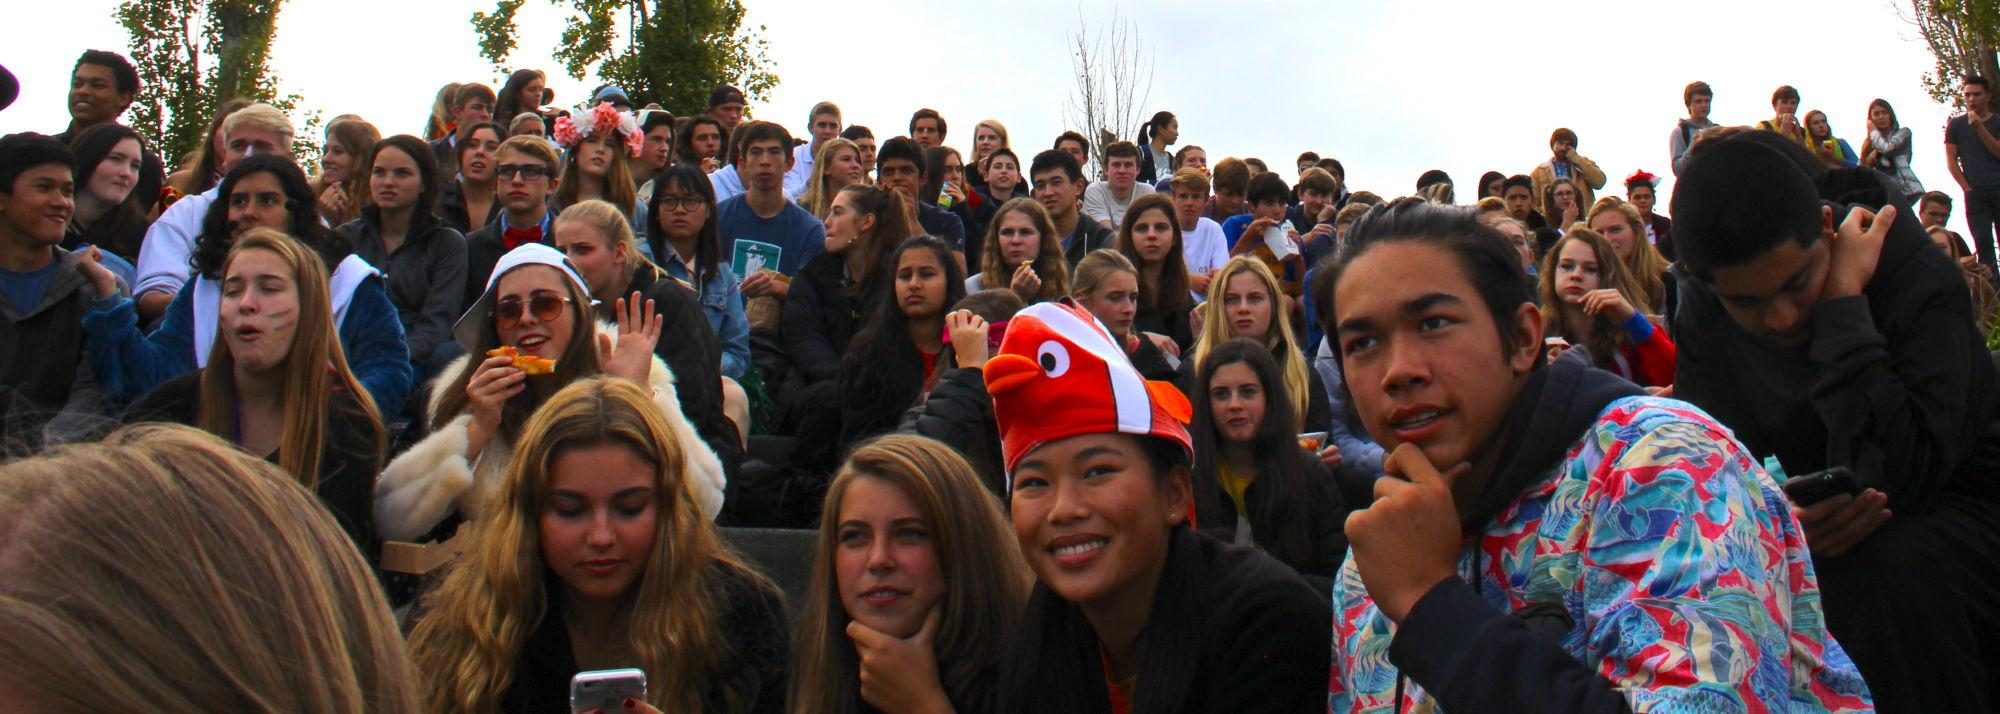 Students+crowd+the+amphitheater+during+the+17th+annual+Halloween+costume+contest.